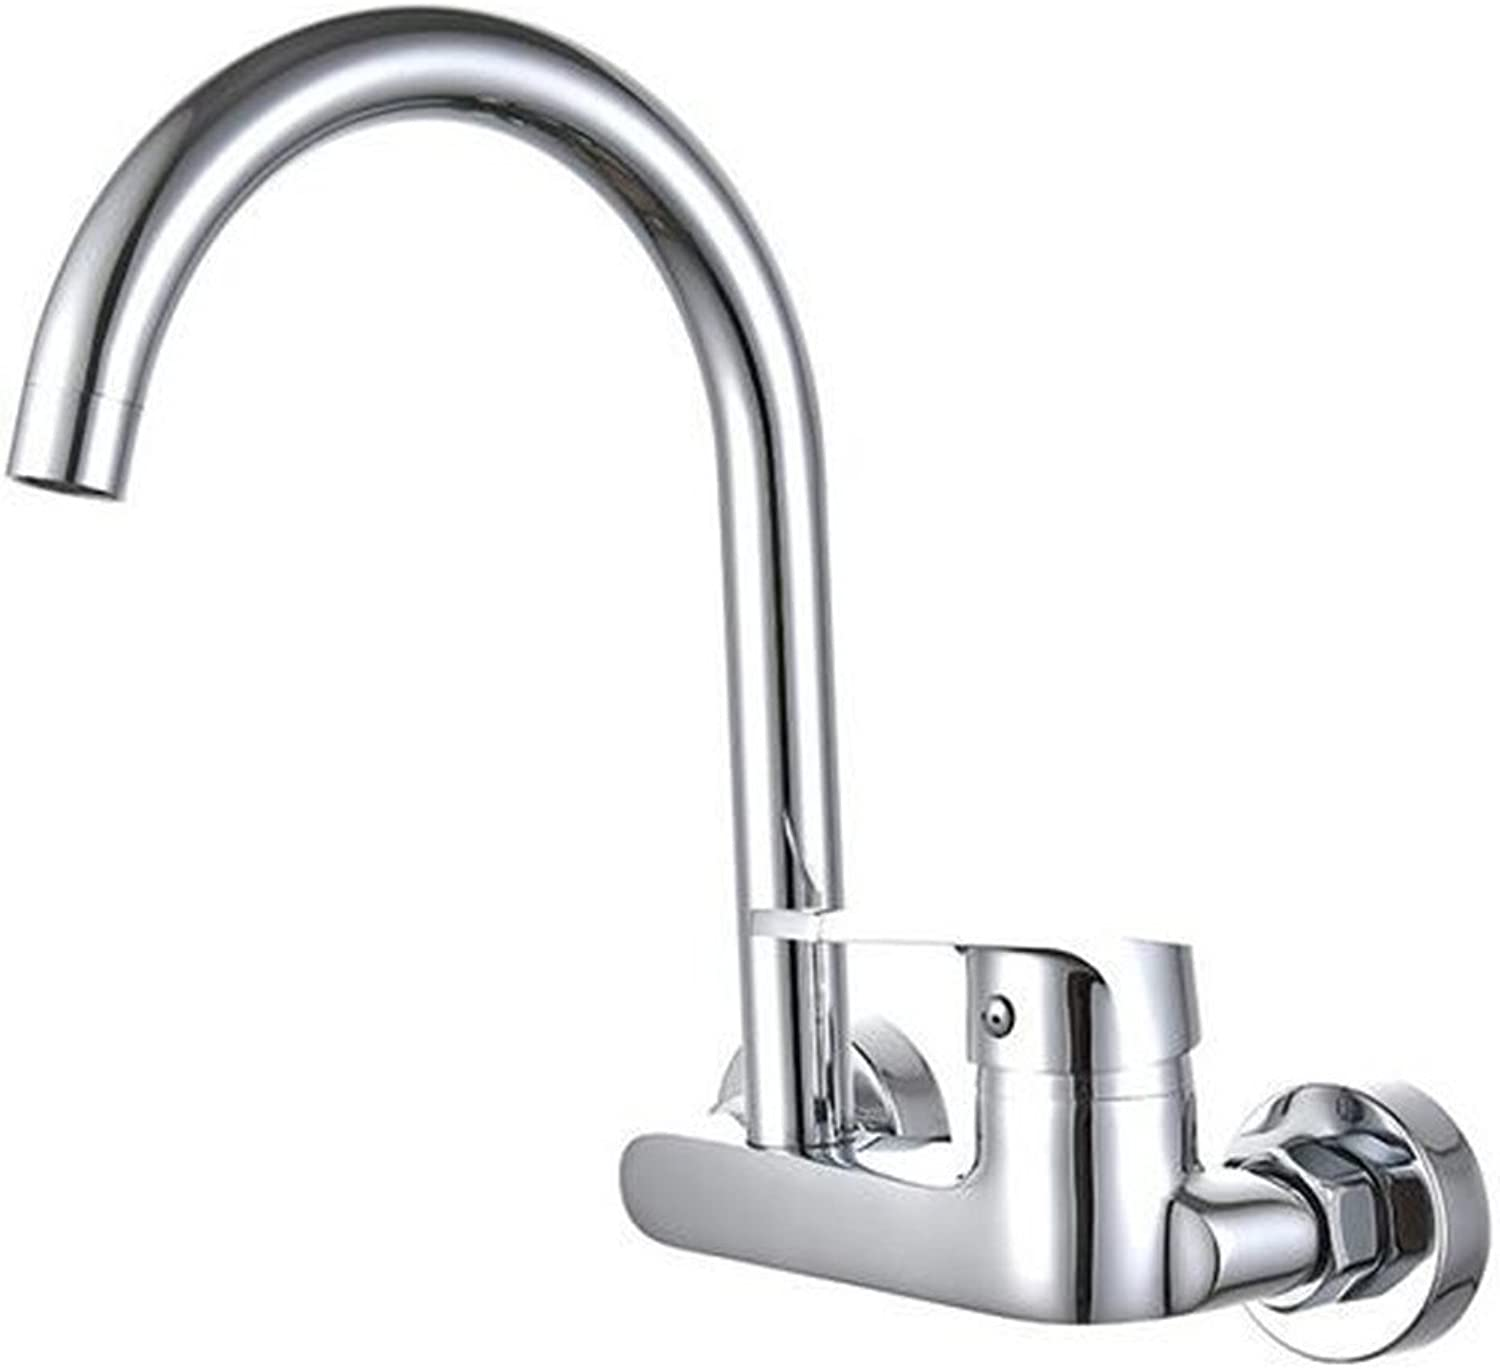 LANGUANGLIN Copper In-Wall Hot And Cold Basin Faucet Hot And Cold Water Wall Outlet Kitchen Faucet Laundry Pool Hot And Cold Faucet